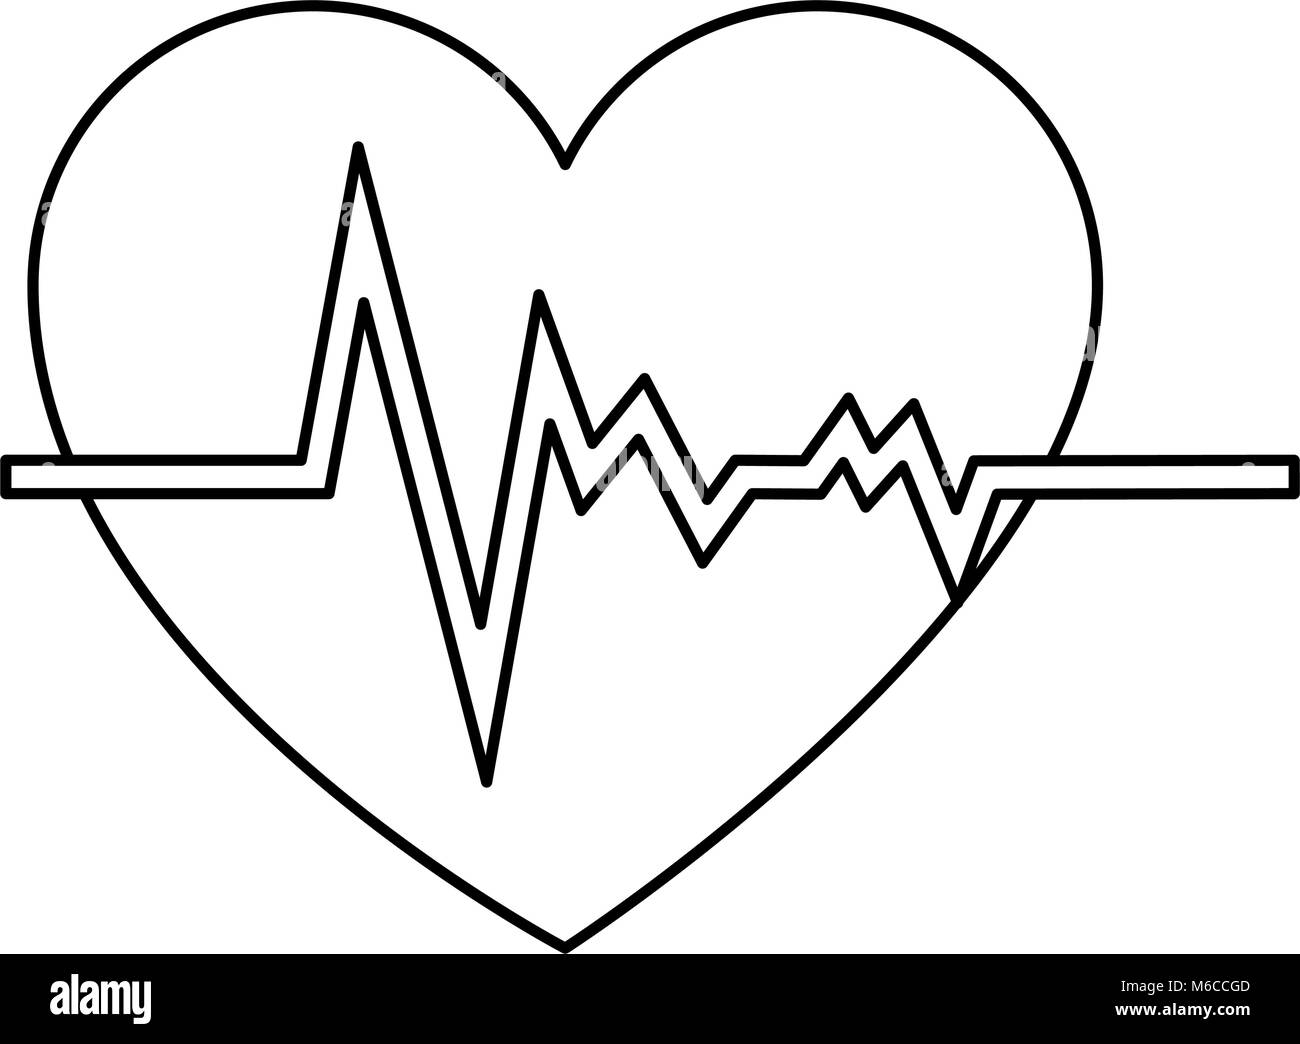 heart rate cardiogram black and white stock photos images alamy Heart Murmur EKG heart cardiology isolated icon stock image